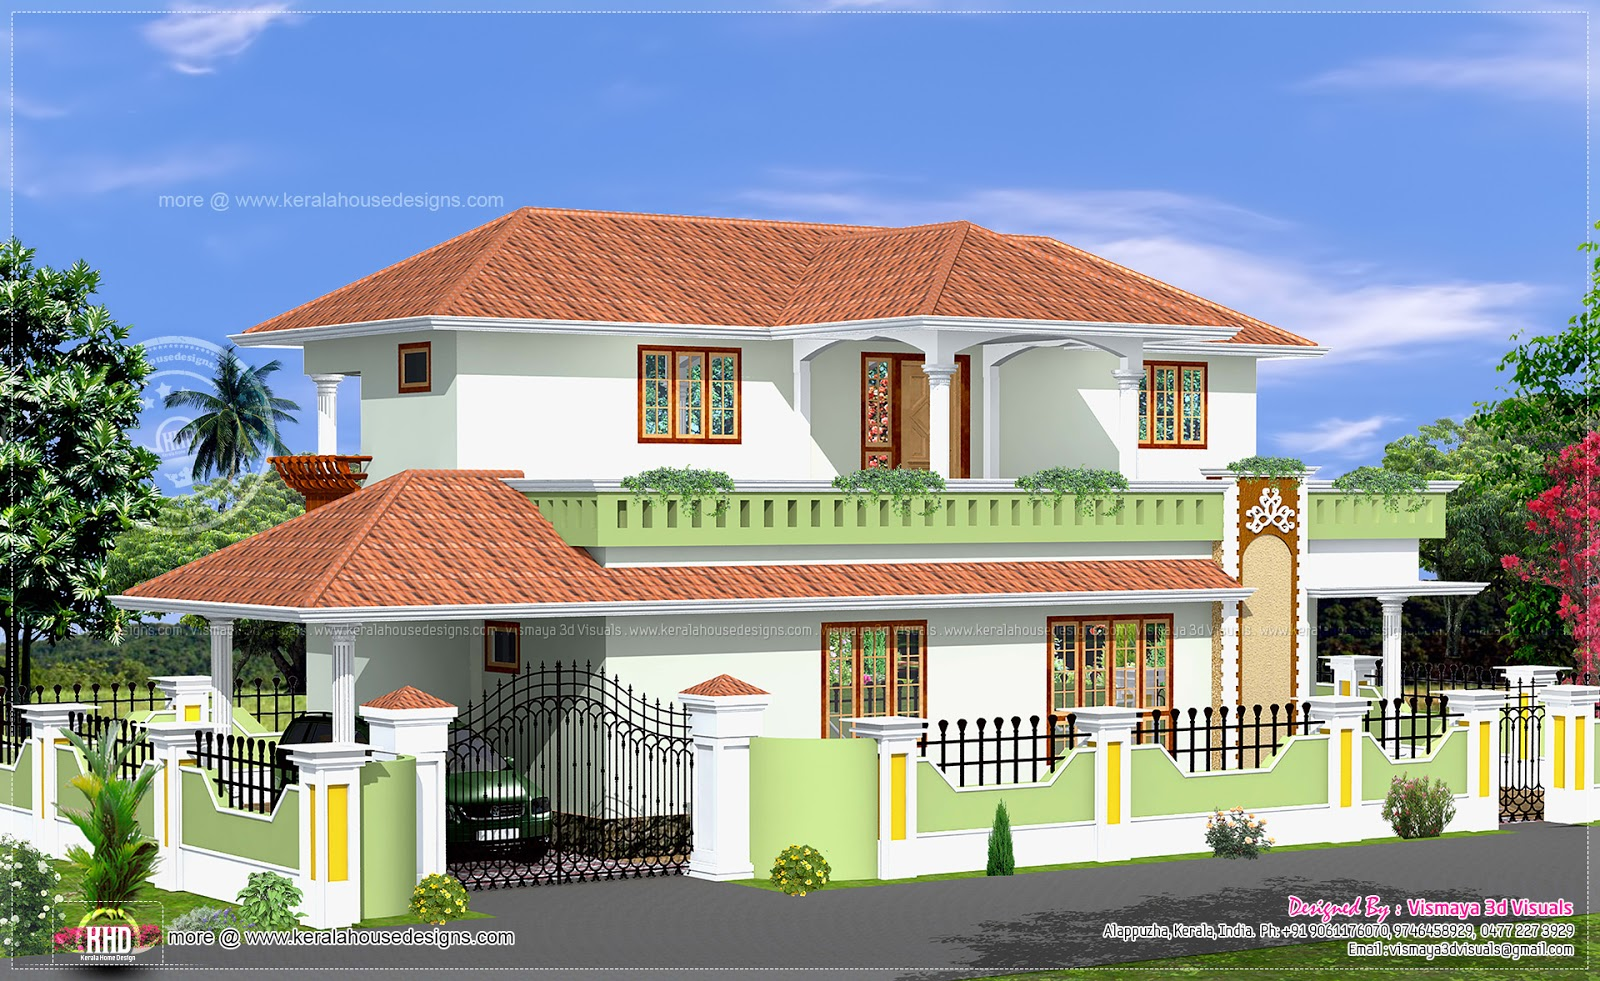 Simple house designs kerala style home design and style for Minimalist house design kerala